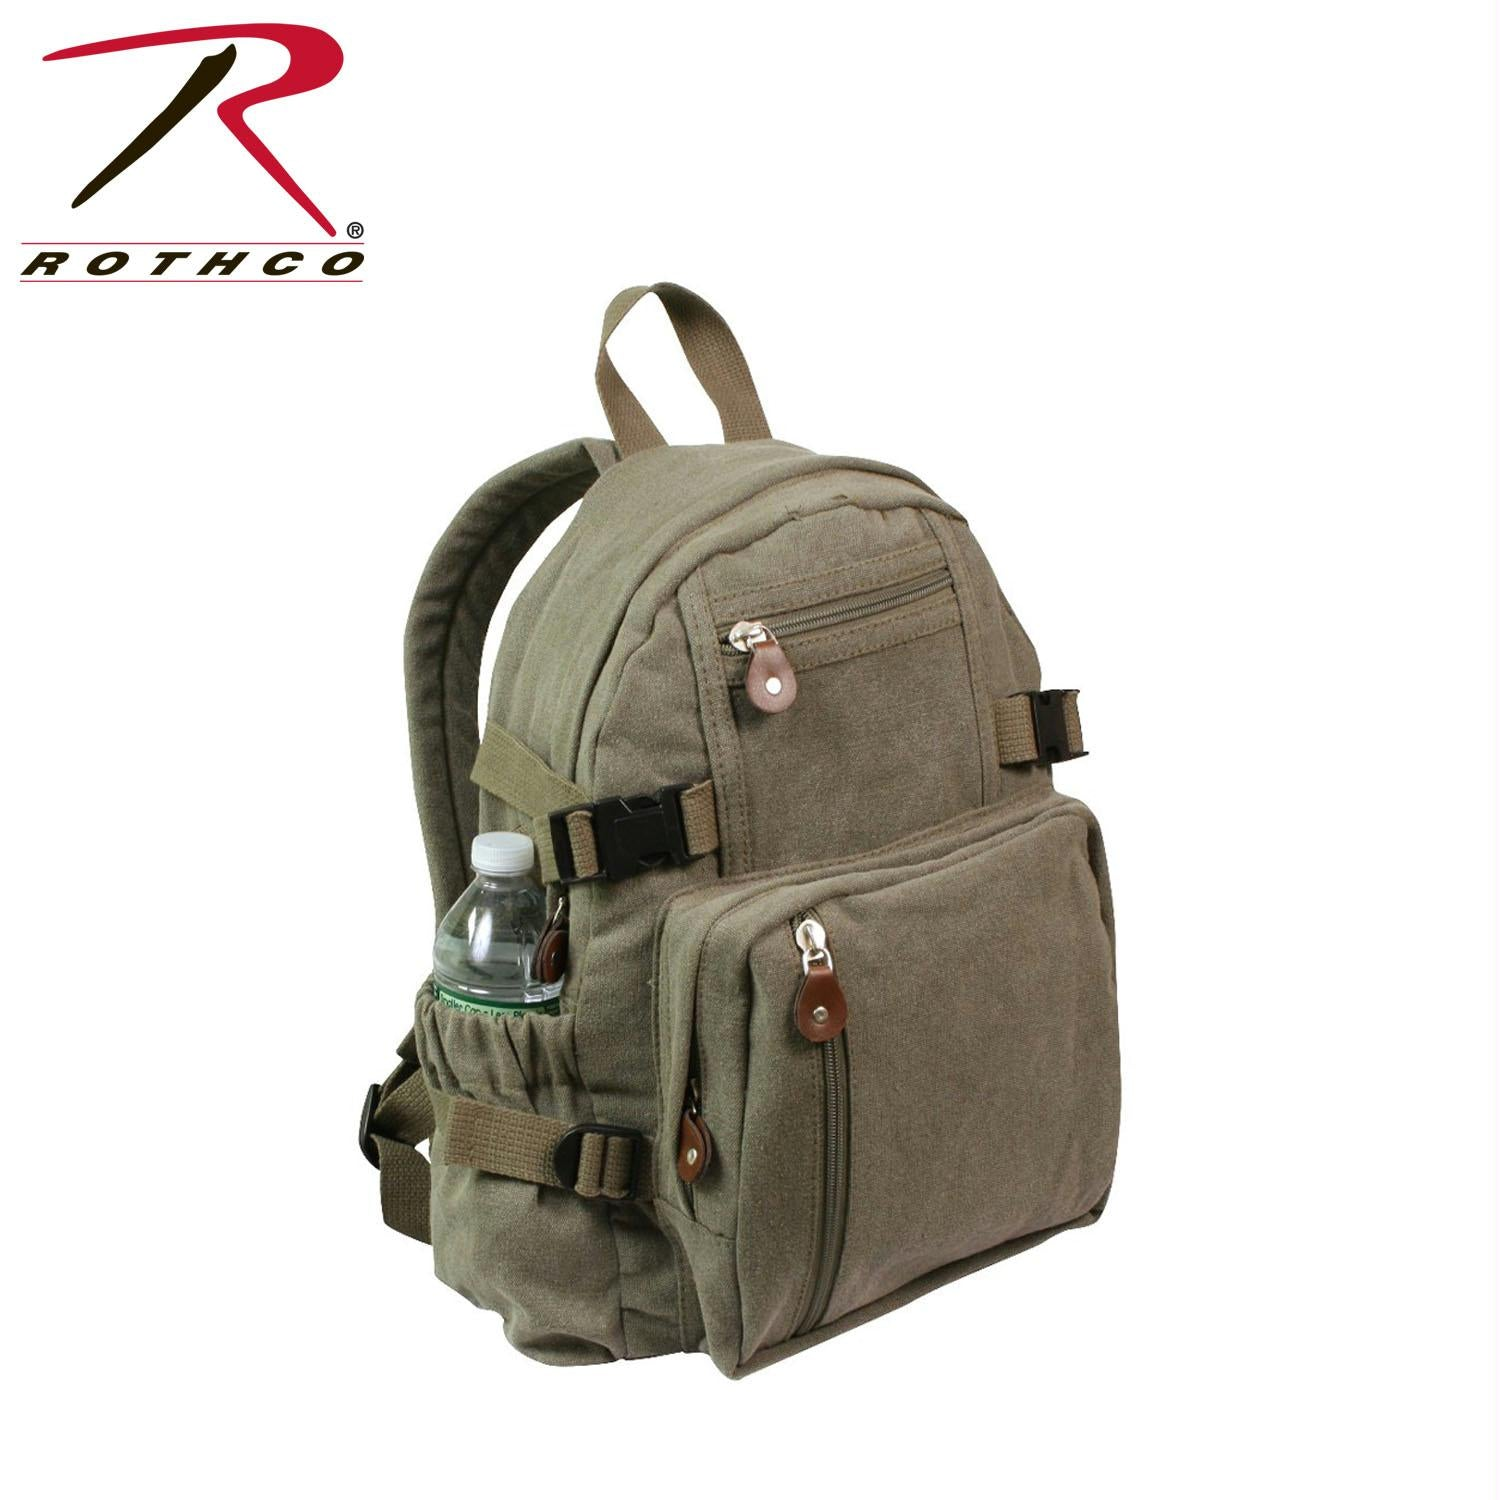 Rothco Vintage Canvas Mini Backpack - Olive Drab